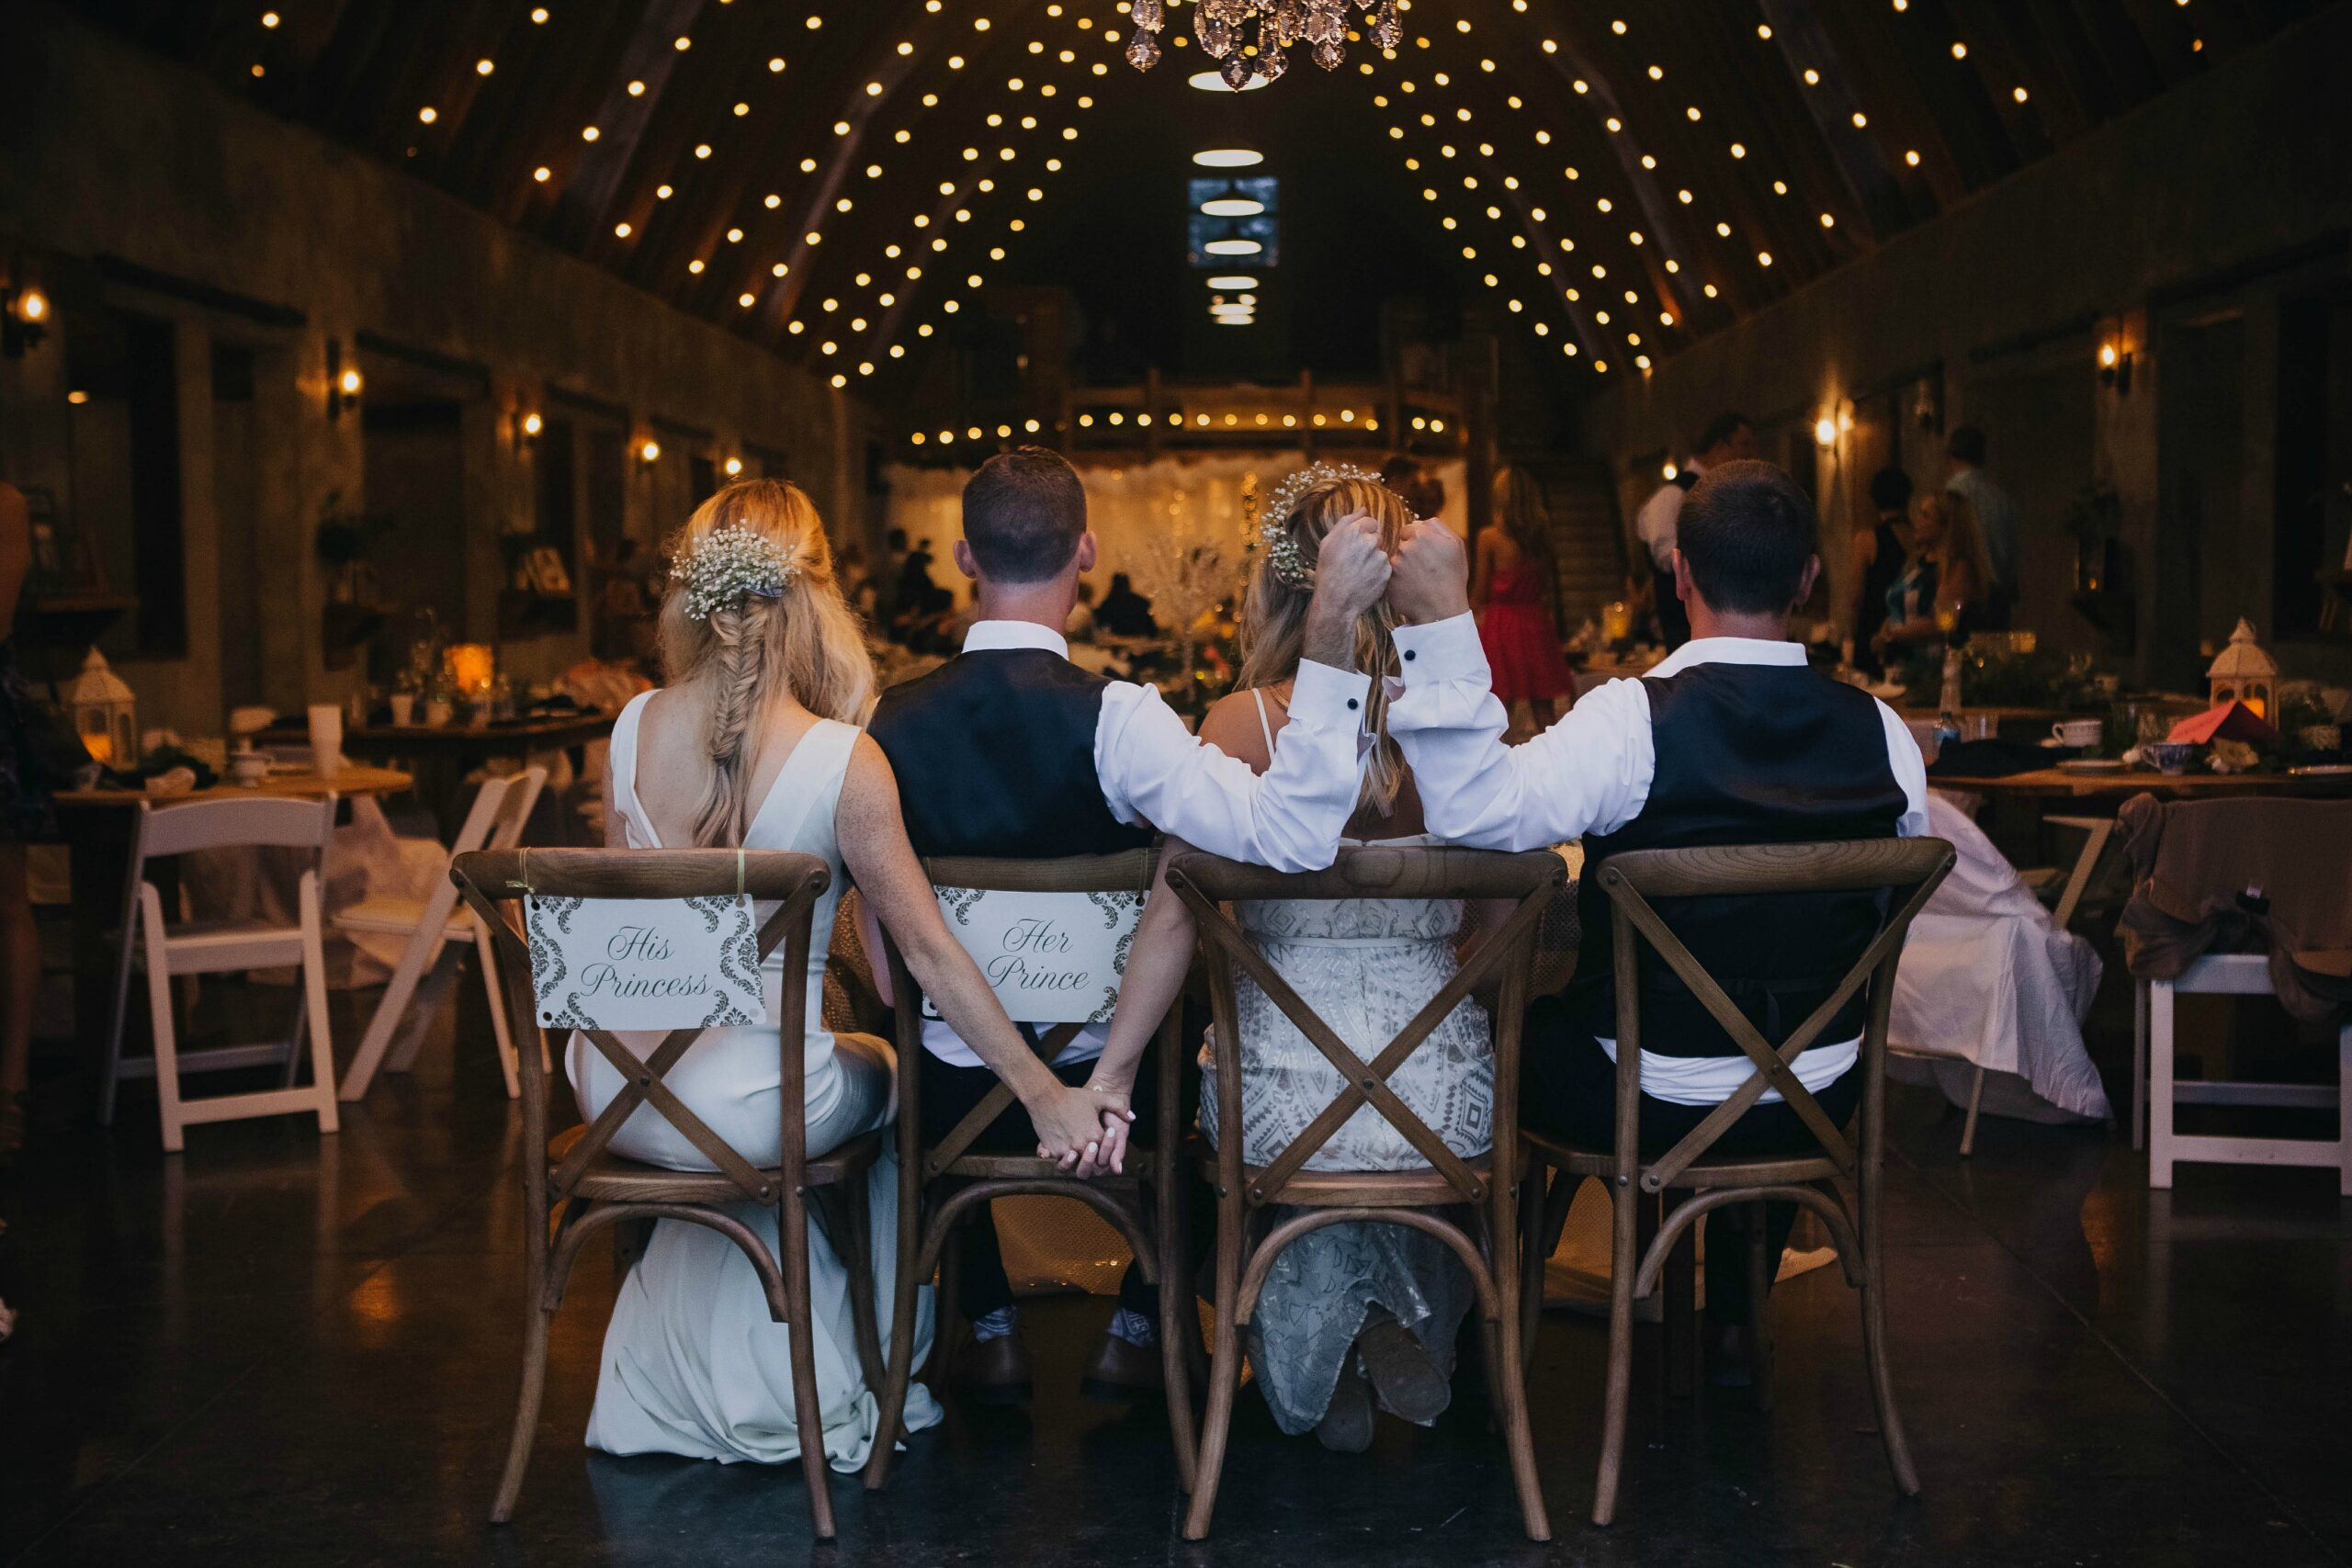 bride, groom, maid of honor, best man sit with their backs facing us and the reception in the background. Bride and bridesmaid hold hands as the men fist pump.